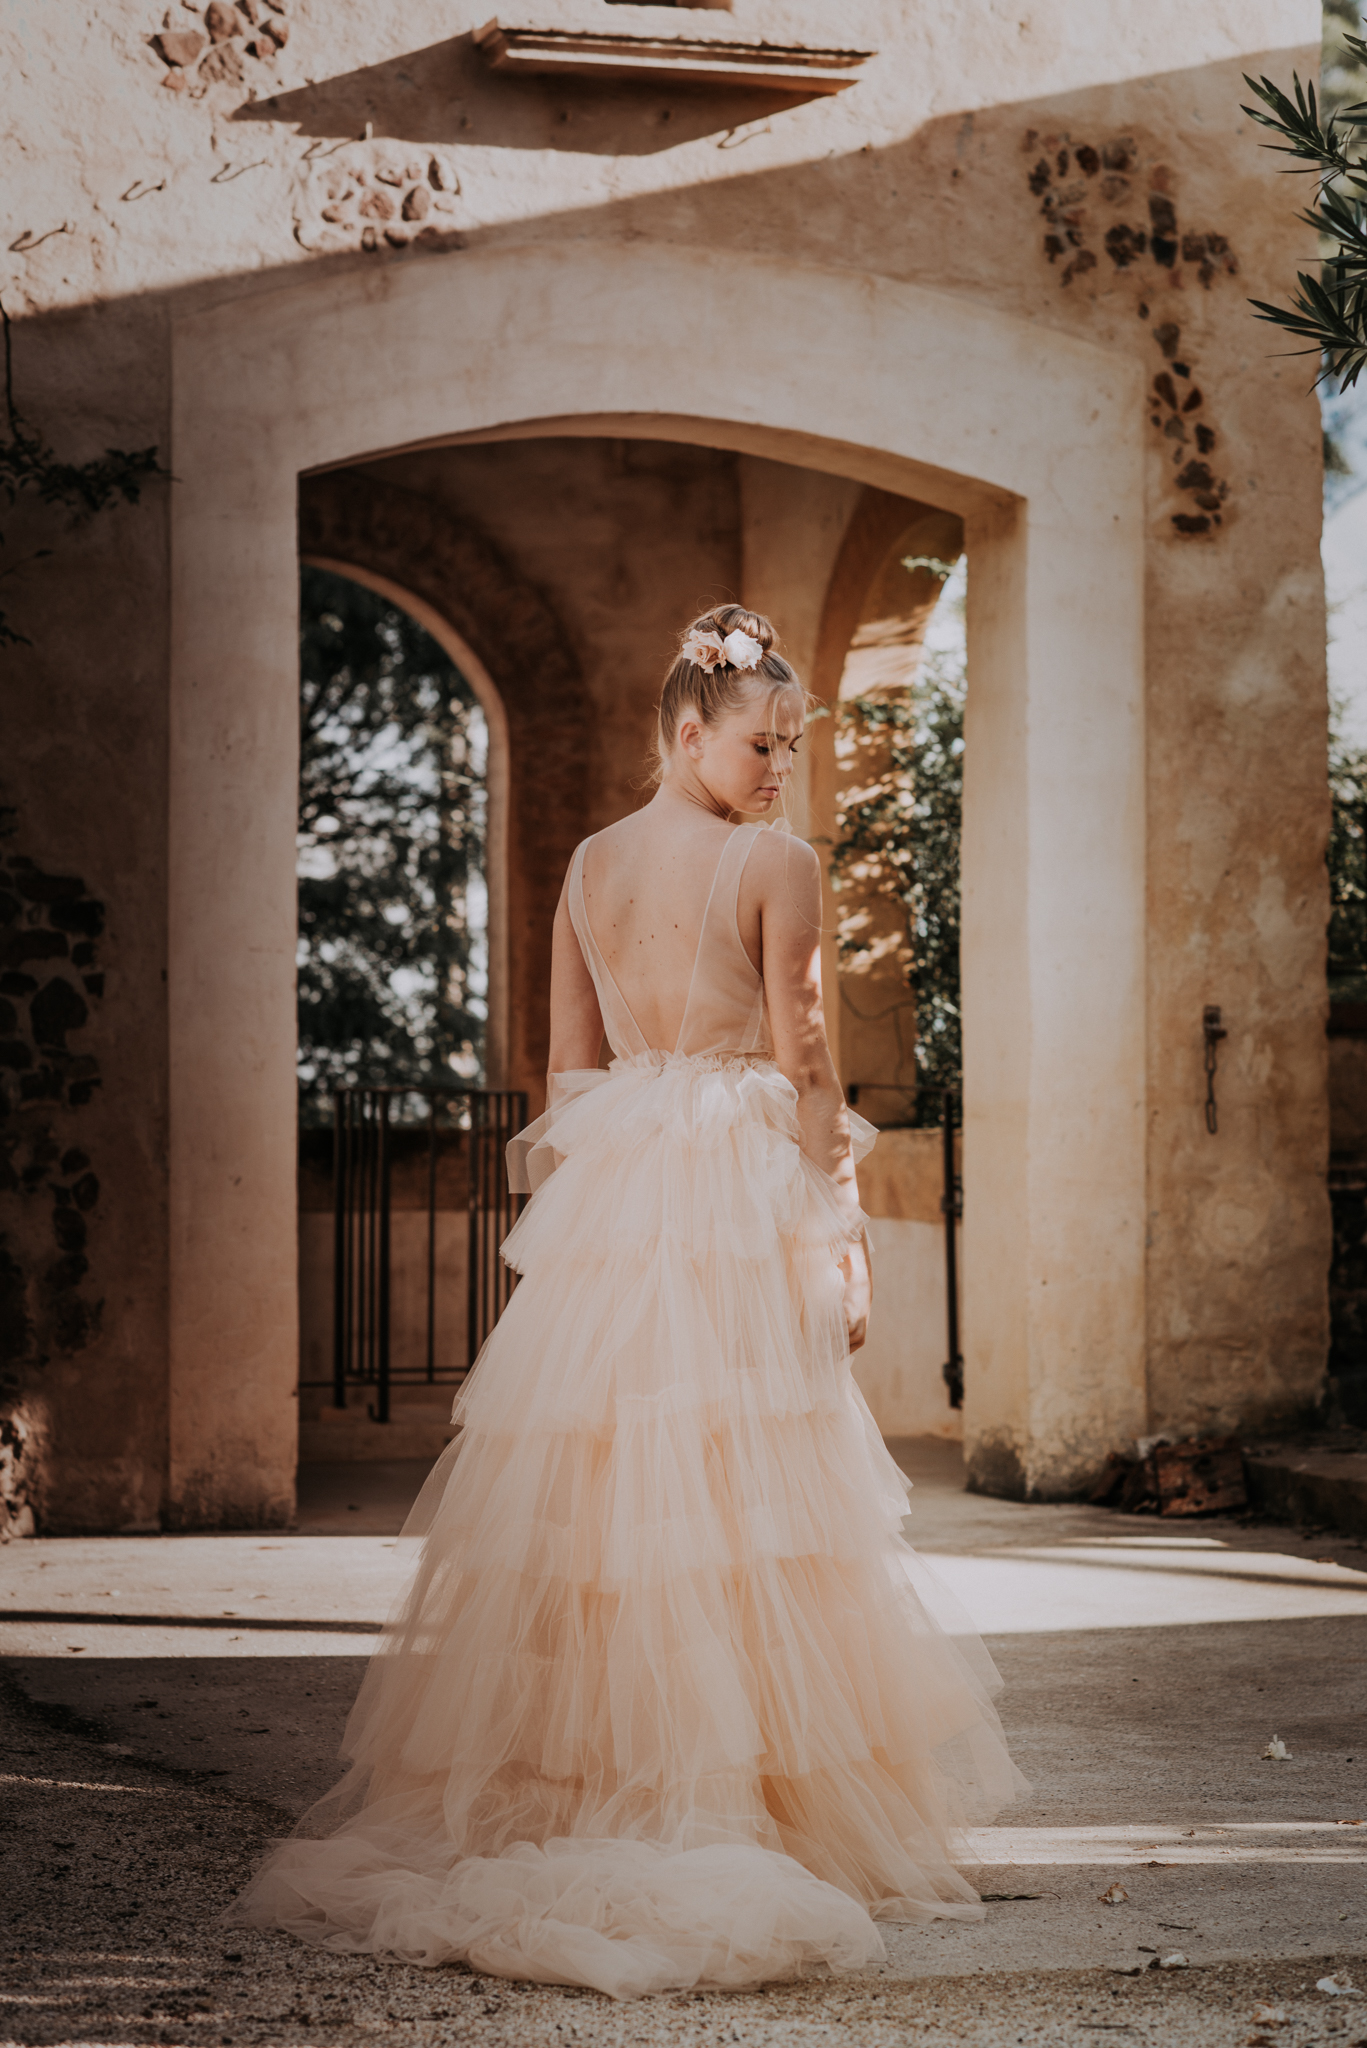 Lovelenscapes Photography X Ulyana Aster Bridal • Les Deux Belettes • Leigh McCoy • Bloodwood Botanica • Alena Iano • Alisa Rudnev • Demi Groot • Jessie Lockley • Maddison Ruby • 103.jpg